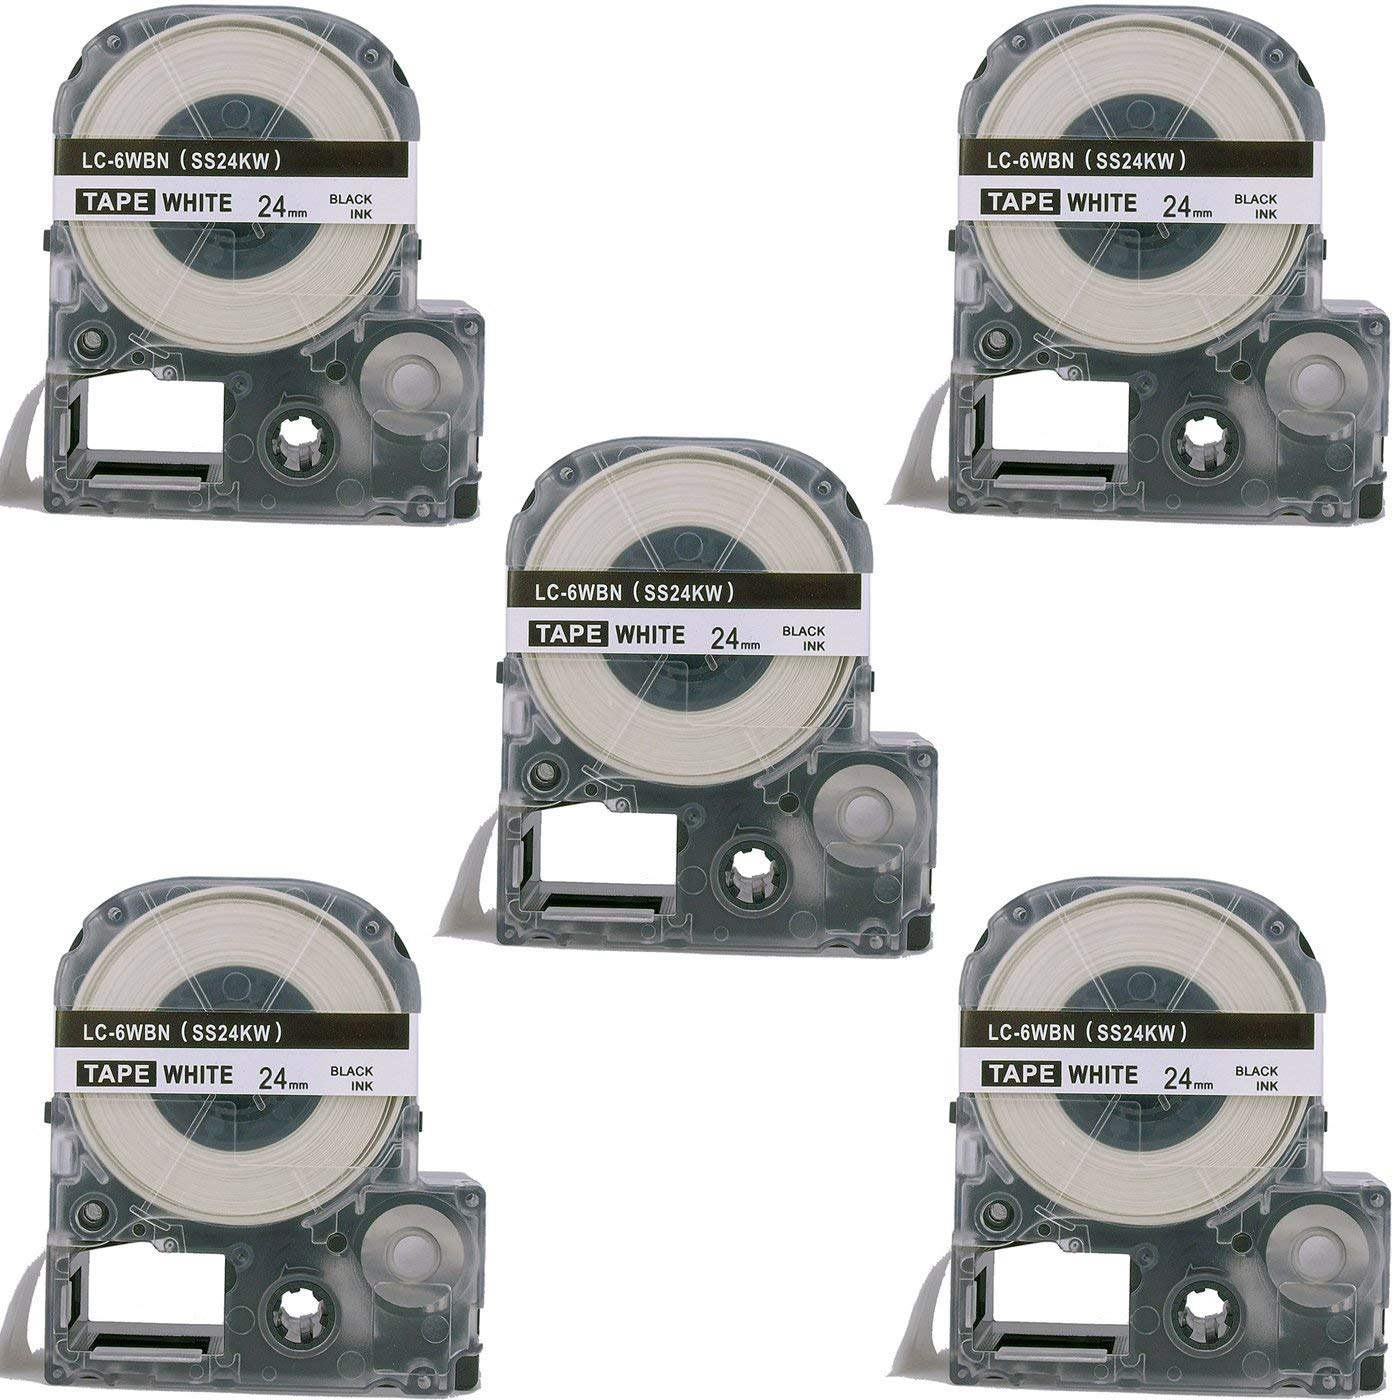 Molshine 5 Pack LC-6WBN9 LK-6WBN9 (SS24KW) Compatible Label Tape for EPSON Black on White (1/1 24mm) 8m